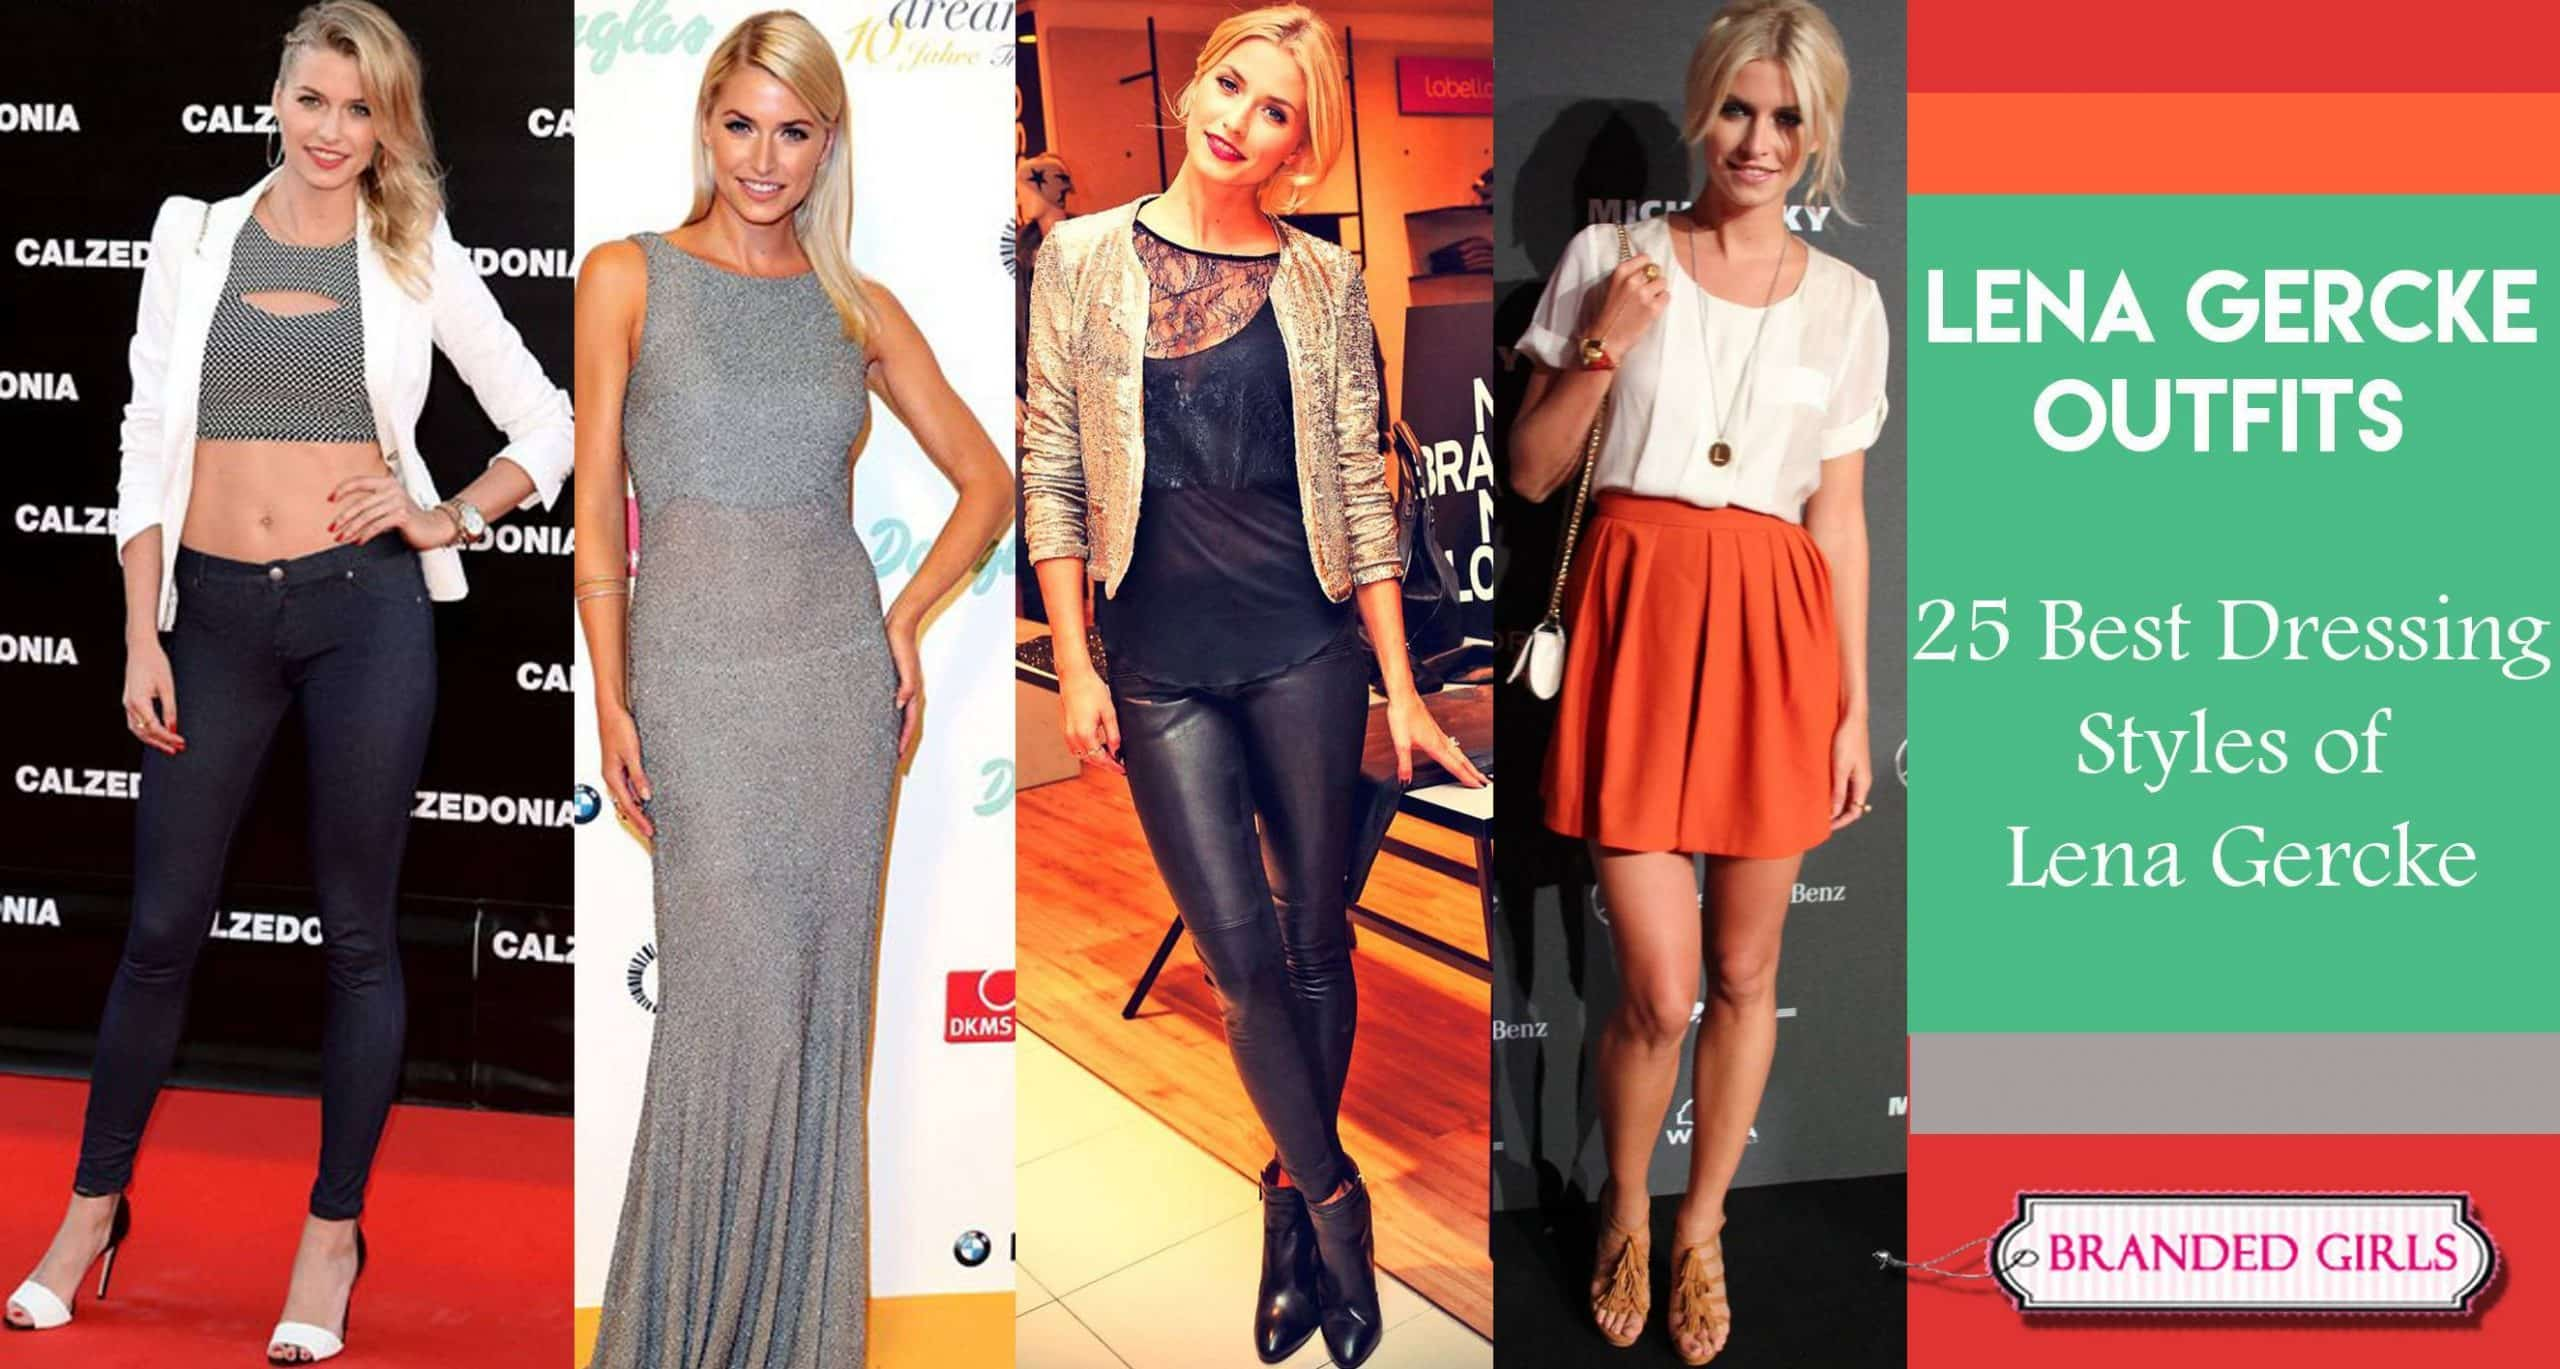 lena gercke outfits